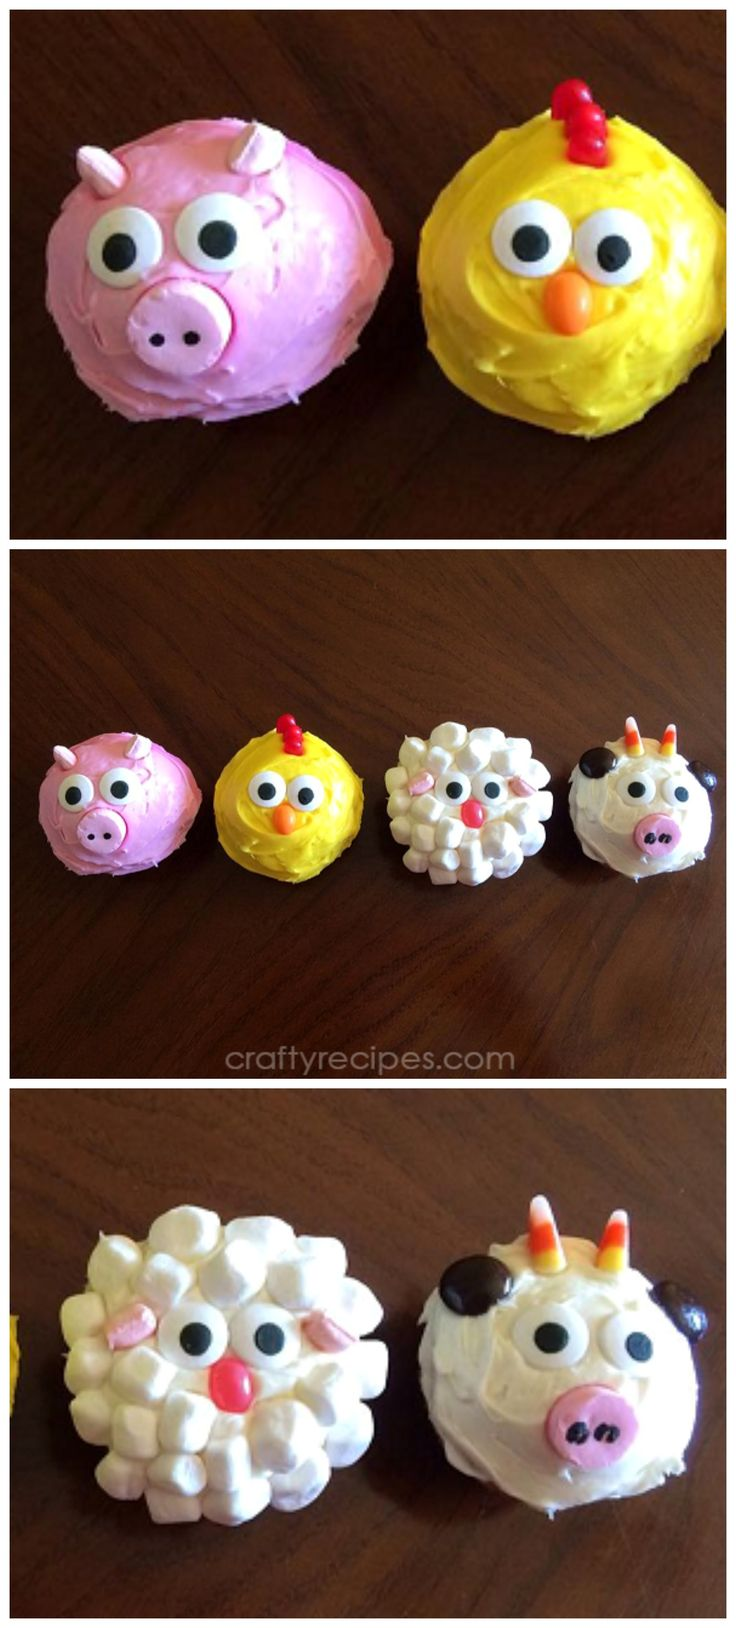 Adorable farm animal cupcakes for a kids party! Pig, chicken, sheep, and cow!